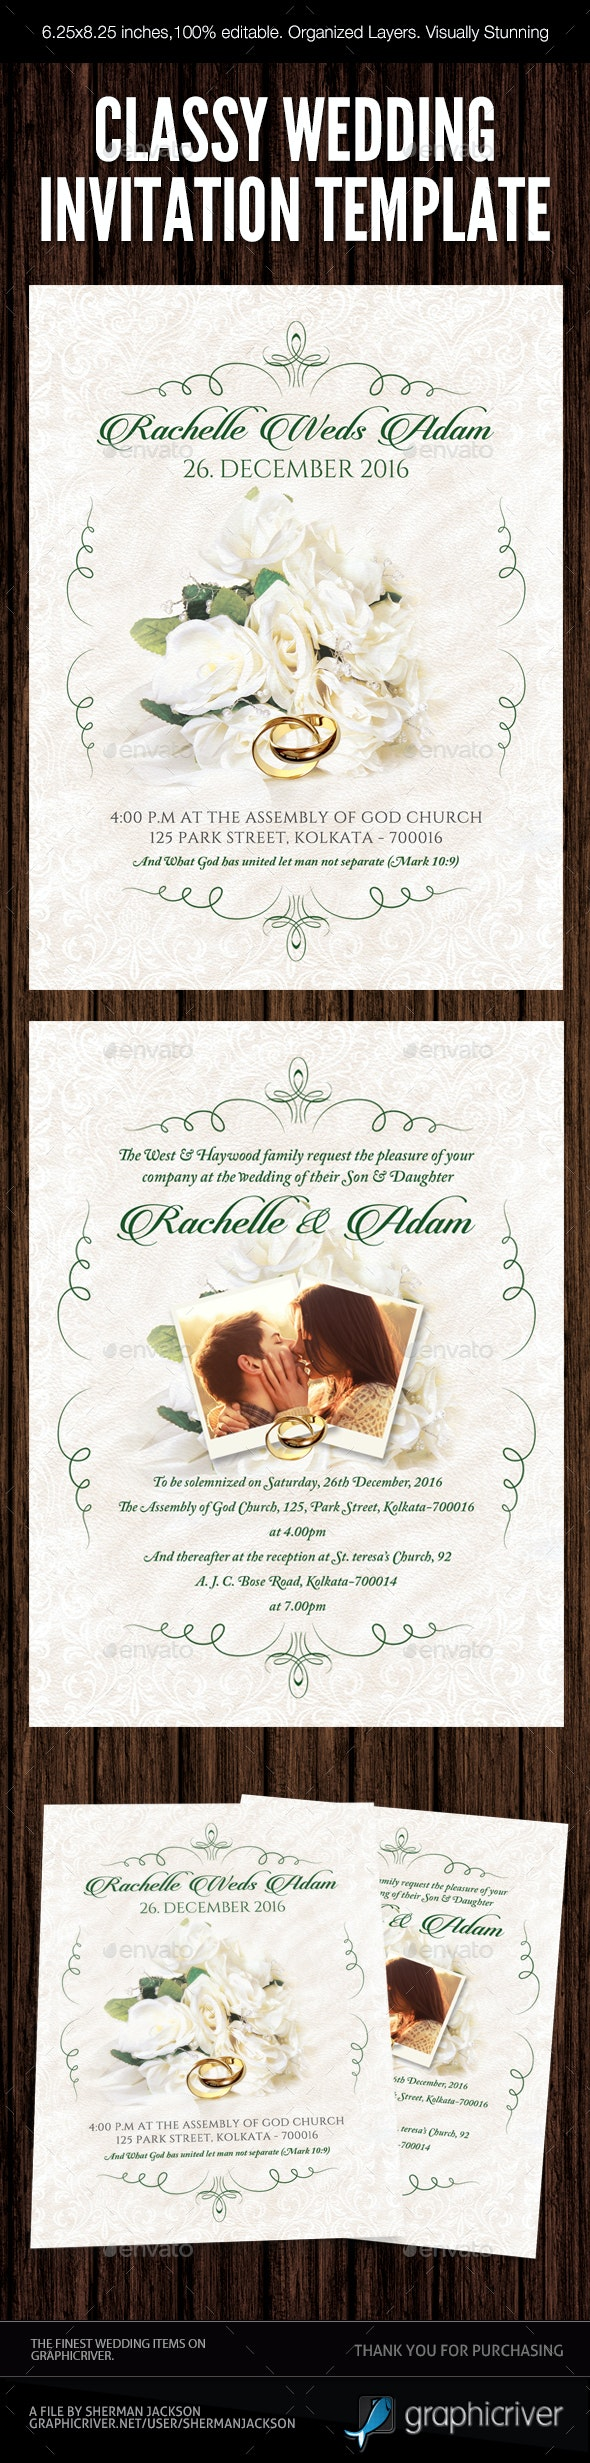 Classy Wedding Invitation 03 - Weddings Cards & Invites